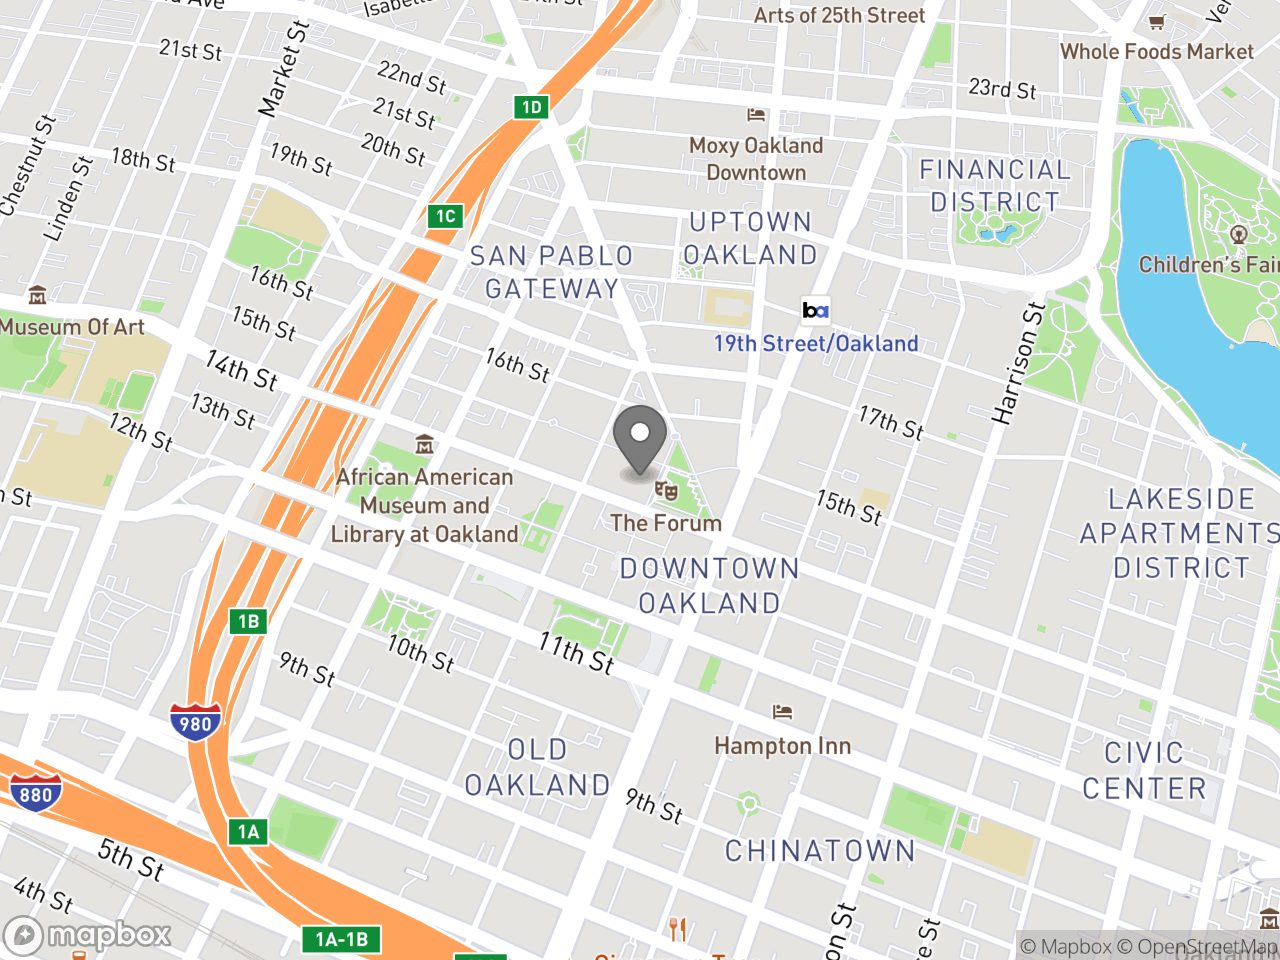 Map image for October 17, 2018 Planning Commission Meeting, located at 1 Frank H Ogawa Plaza in Oakland, CA 94612